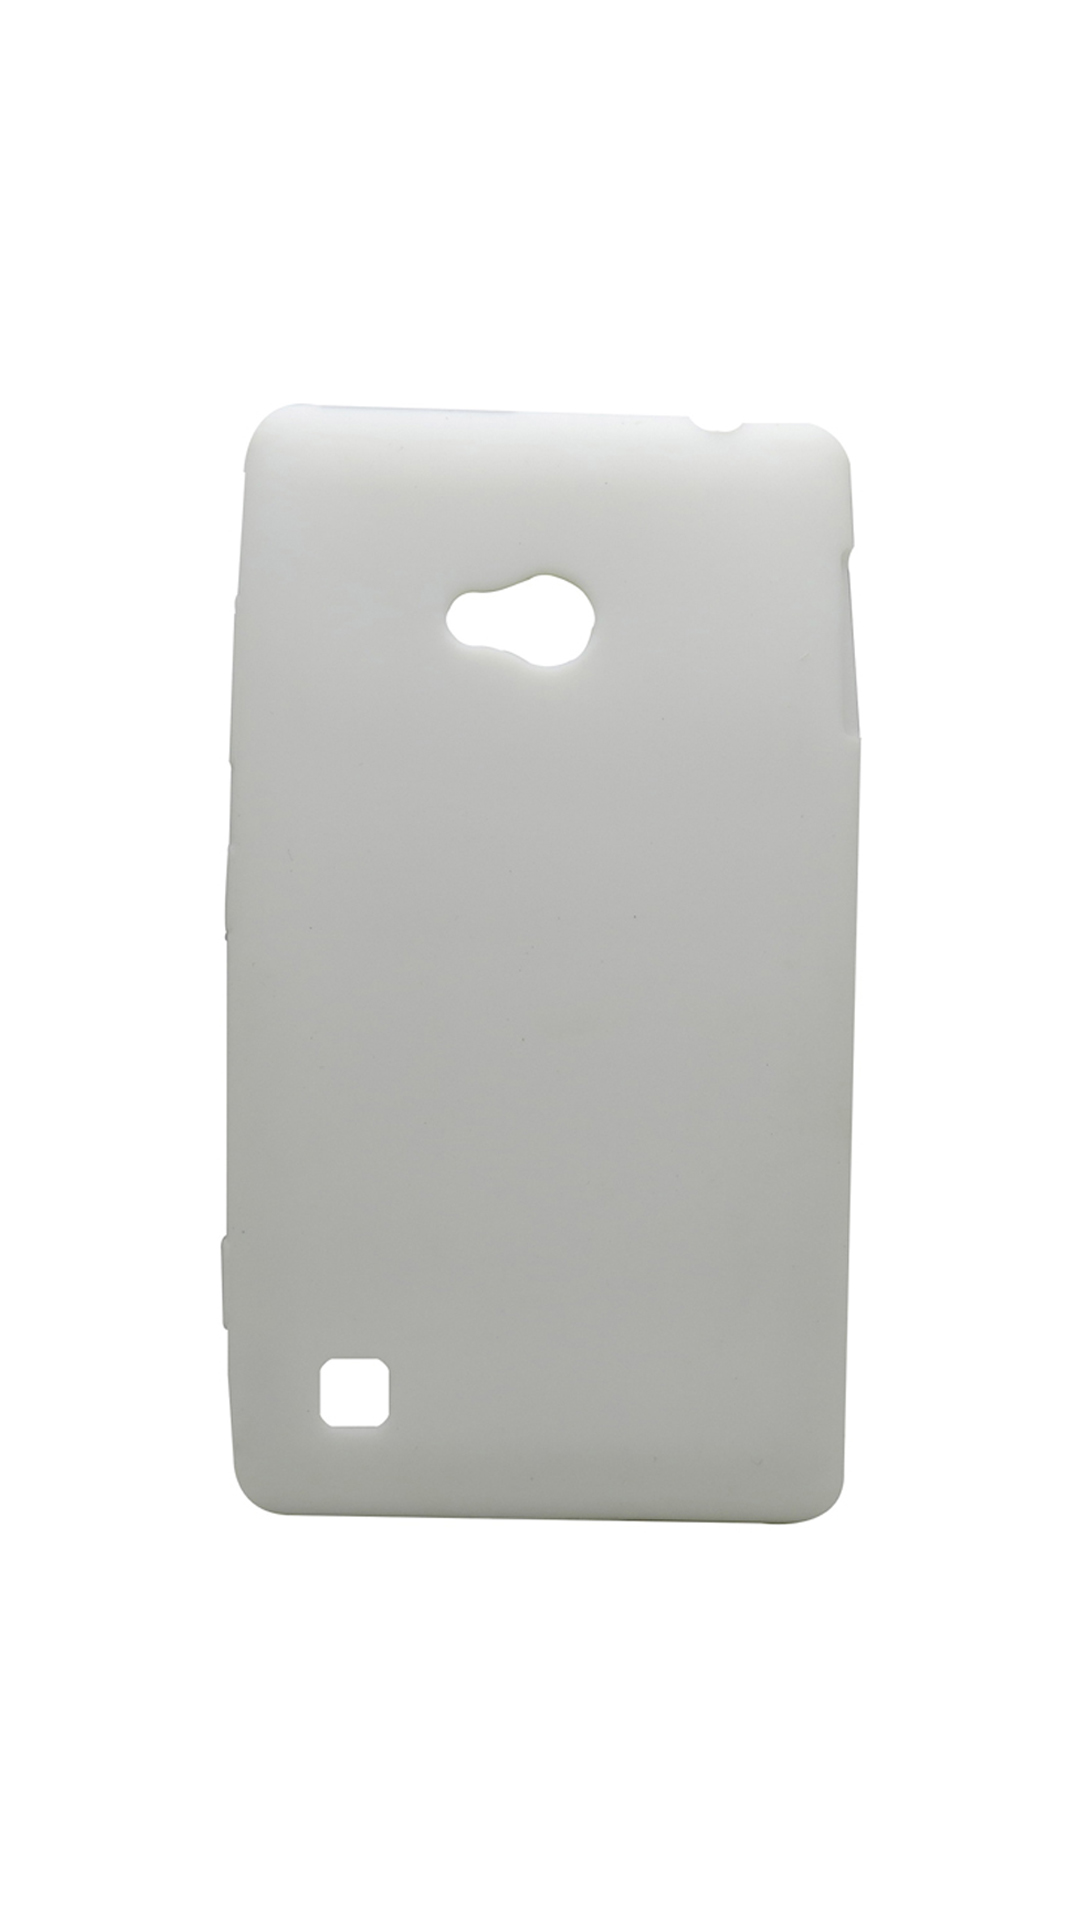 Snooky Jelly Gel Back Cover For Nokia Lumia 720  White  available at Paytm for Rs.169